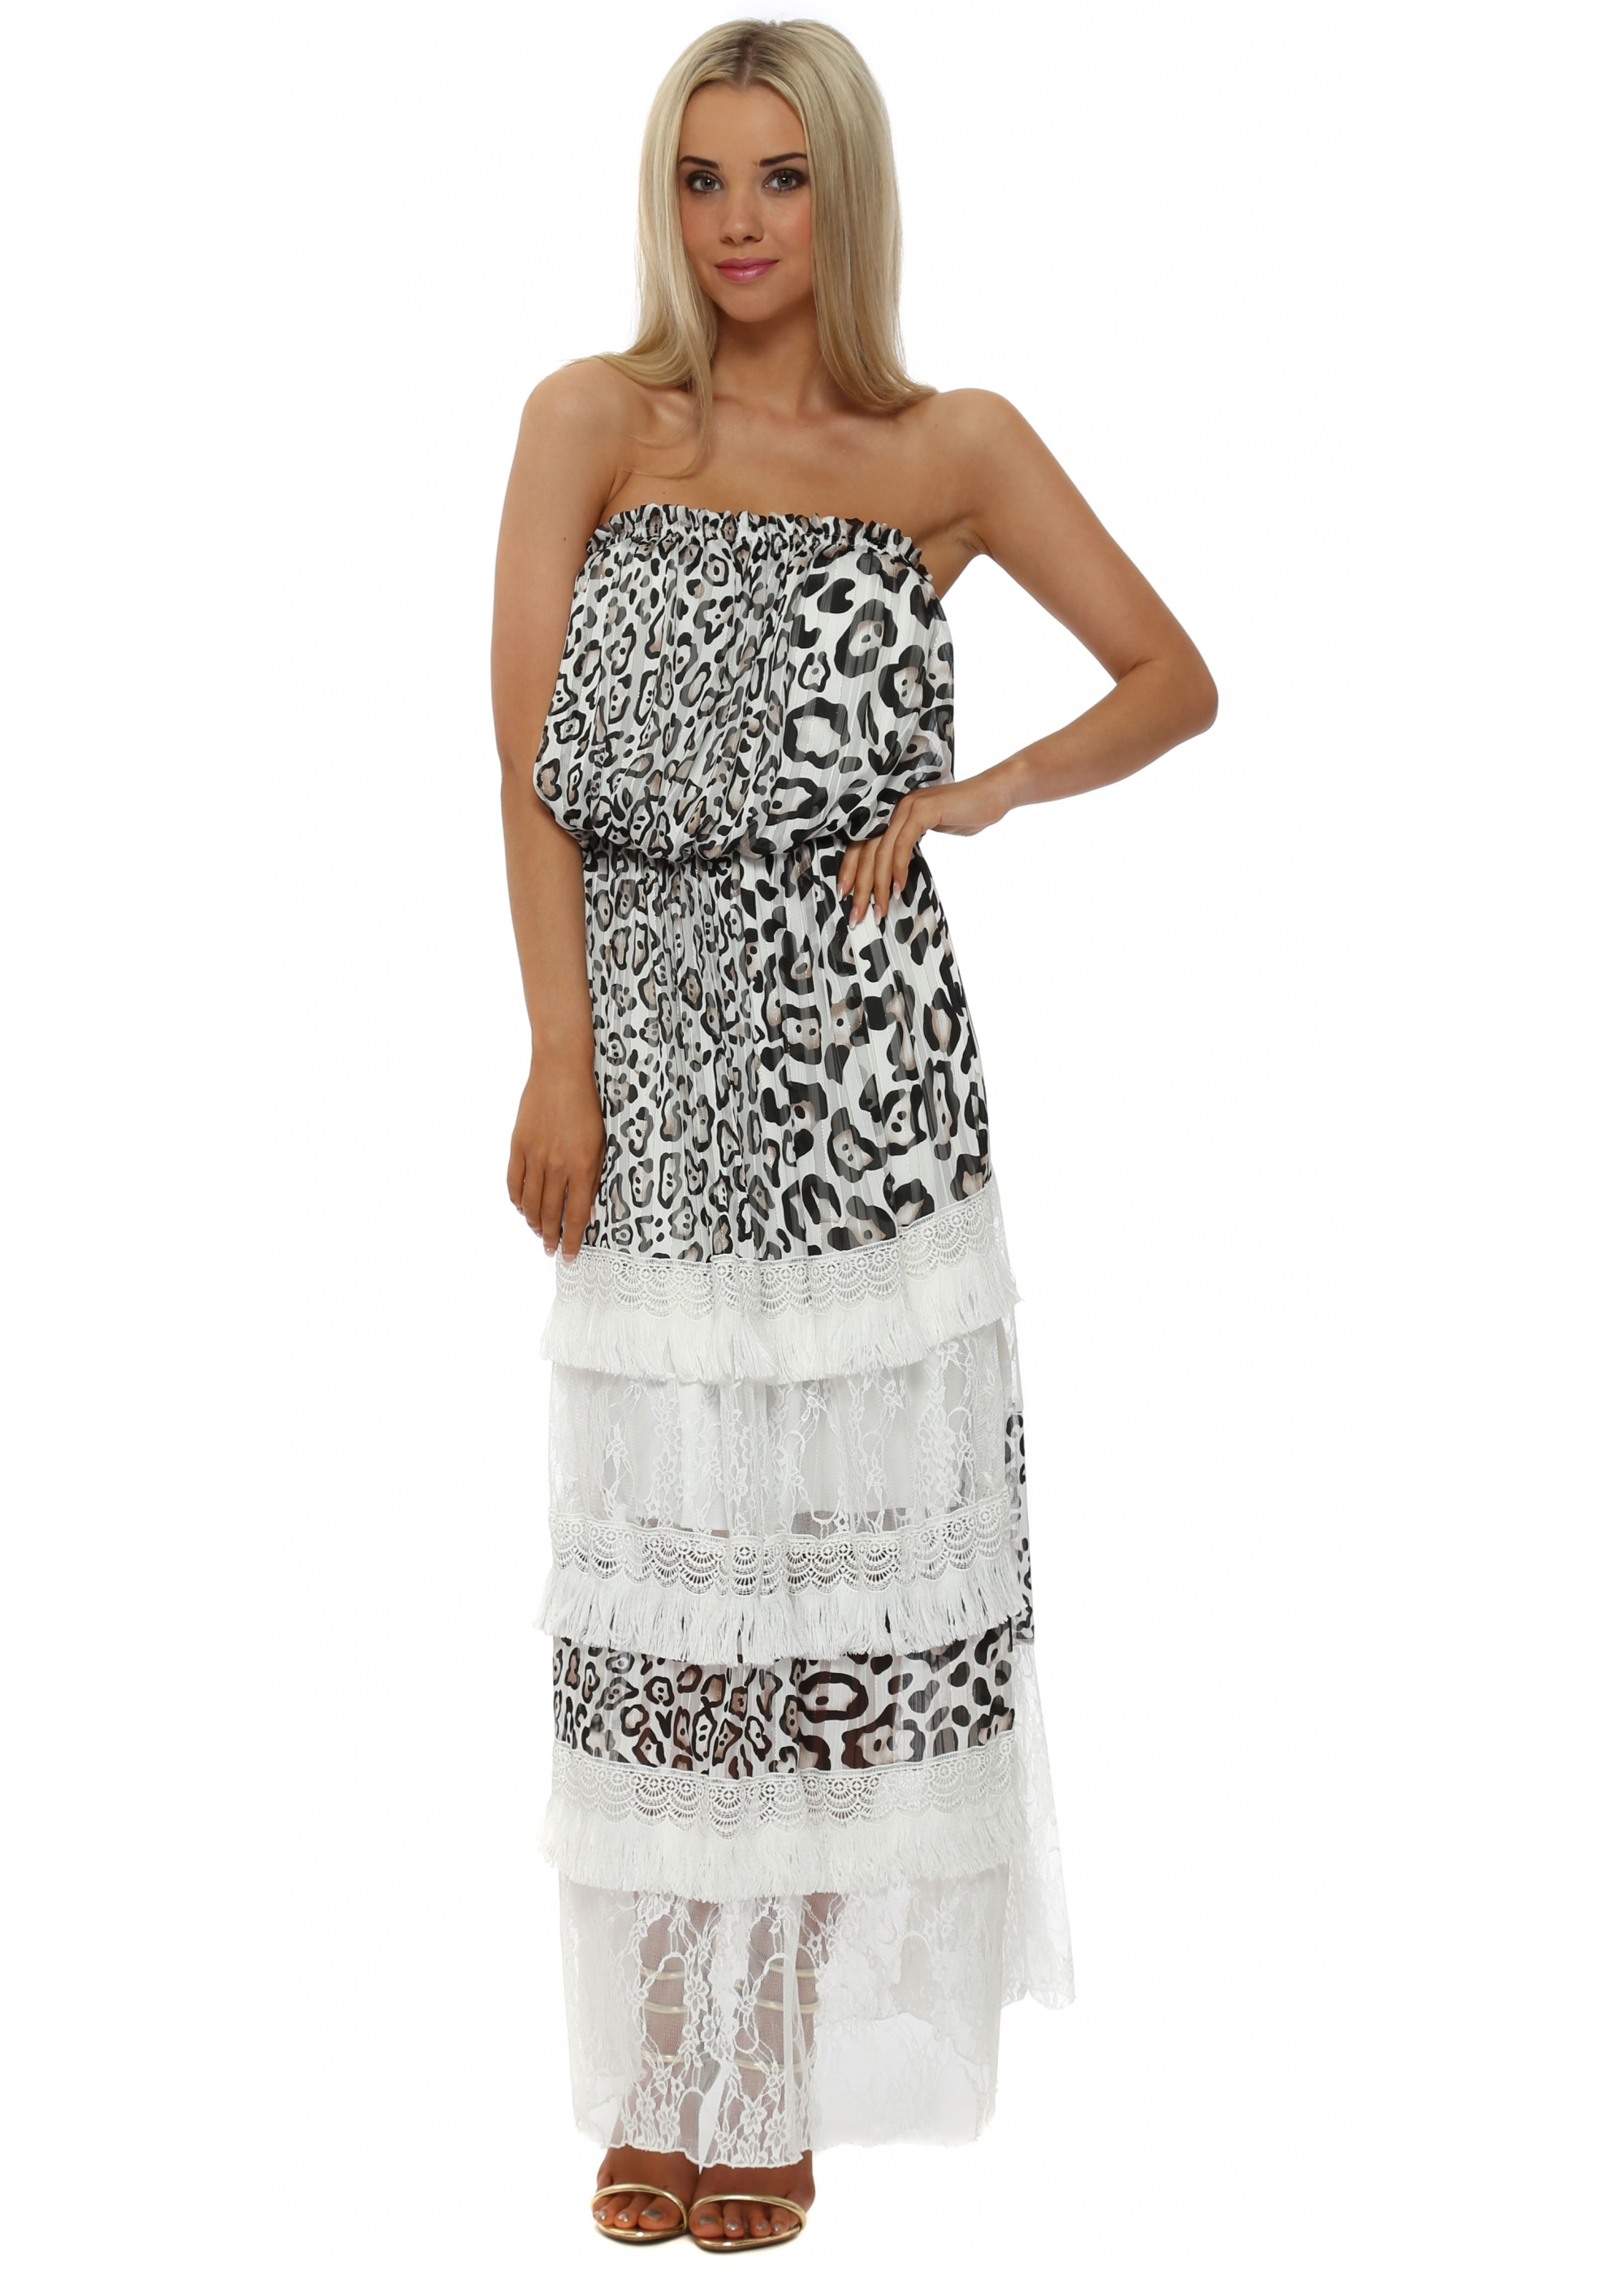 08af41fa60 My Story Paris Leopard Print Lace Maxi Dress